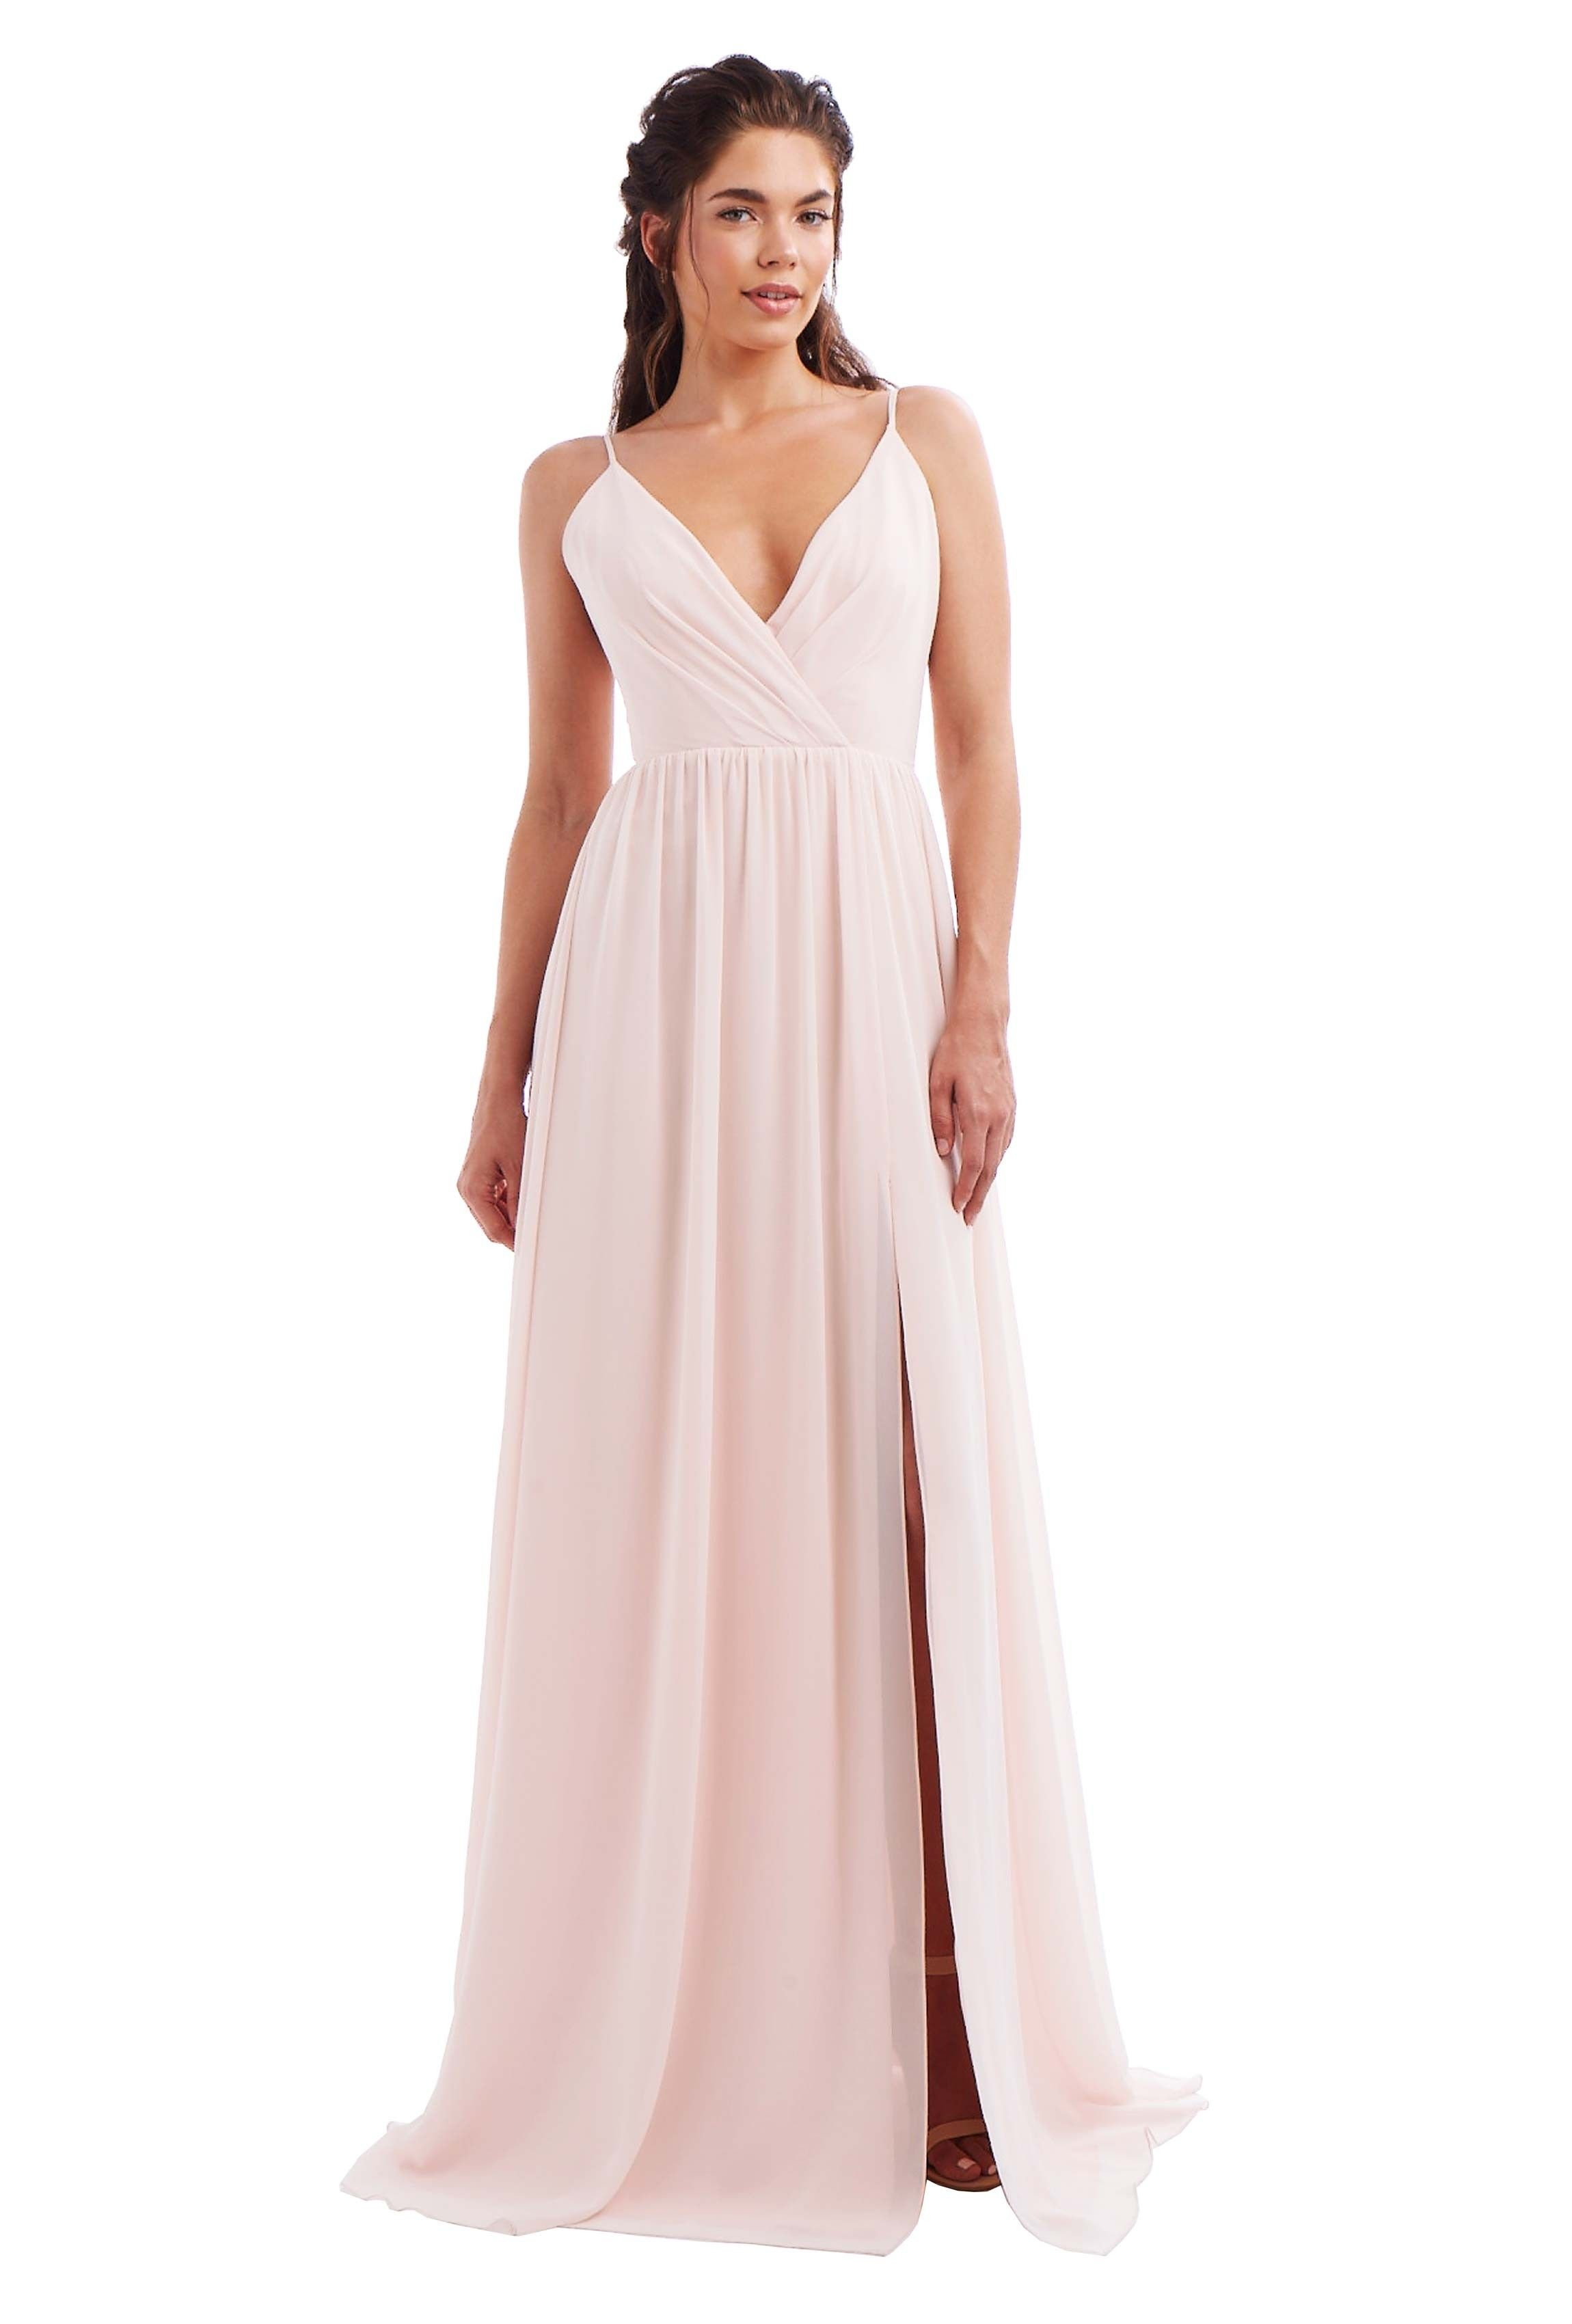 Monique lhuillier kelsea chiffon bridesmaid dresses wedding and a floor length v neck chiffon bridesmaid dress with cutout slit in eight colors ombrellifo Image collections